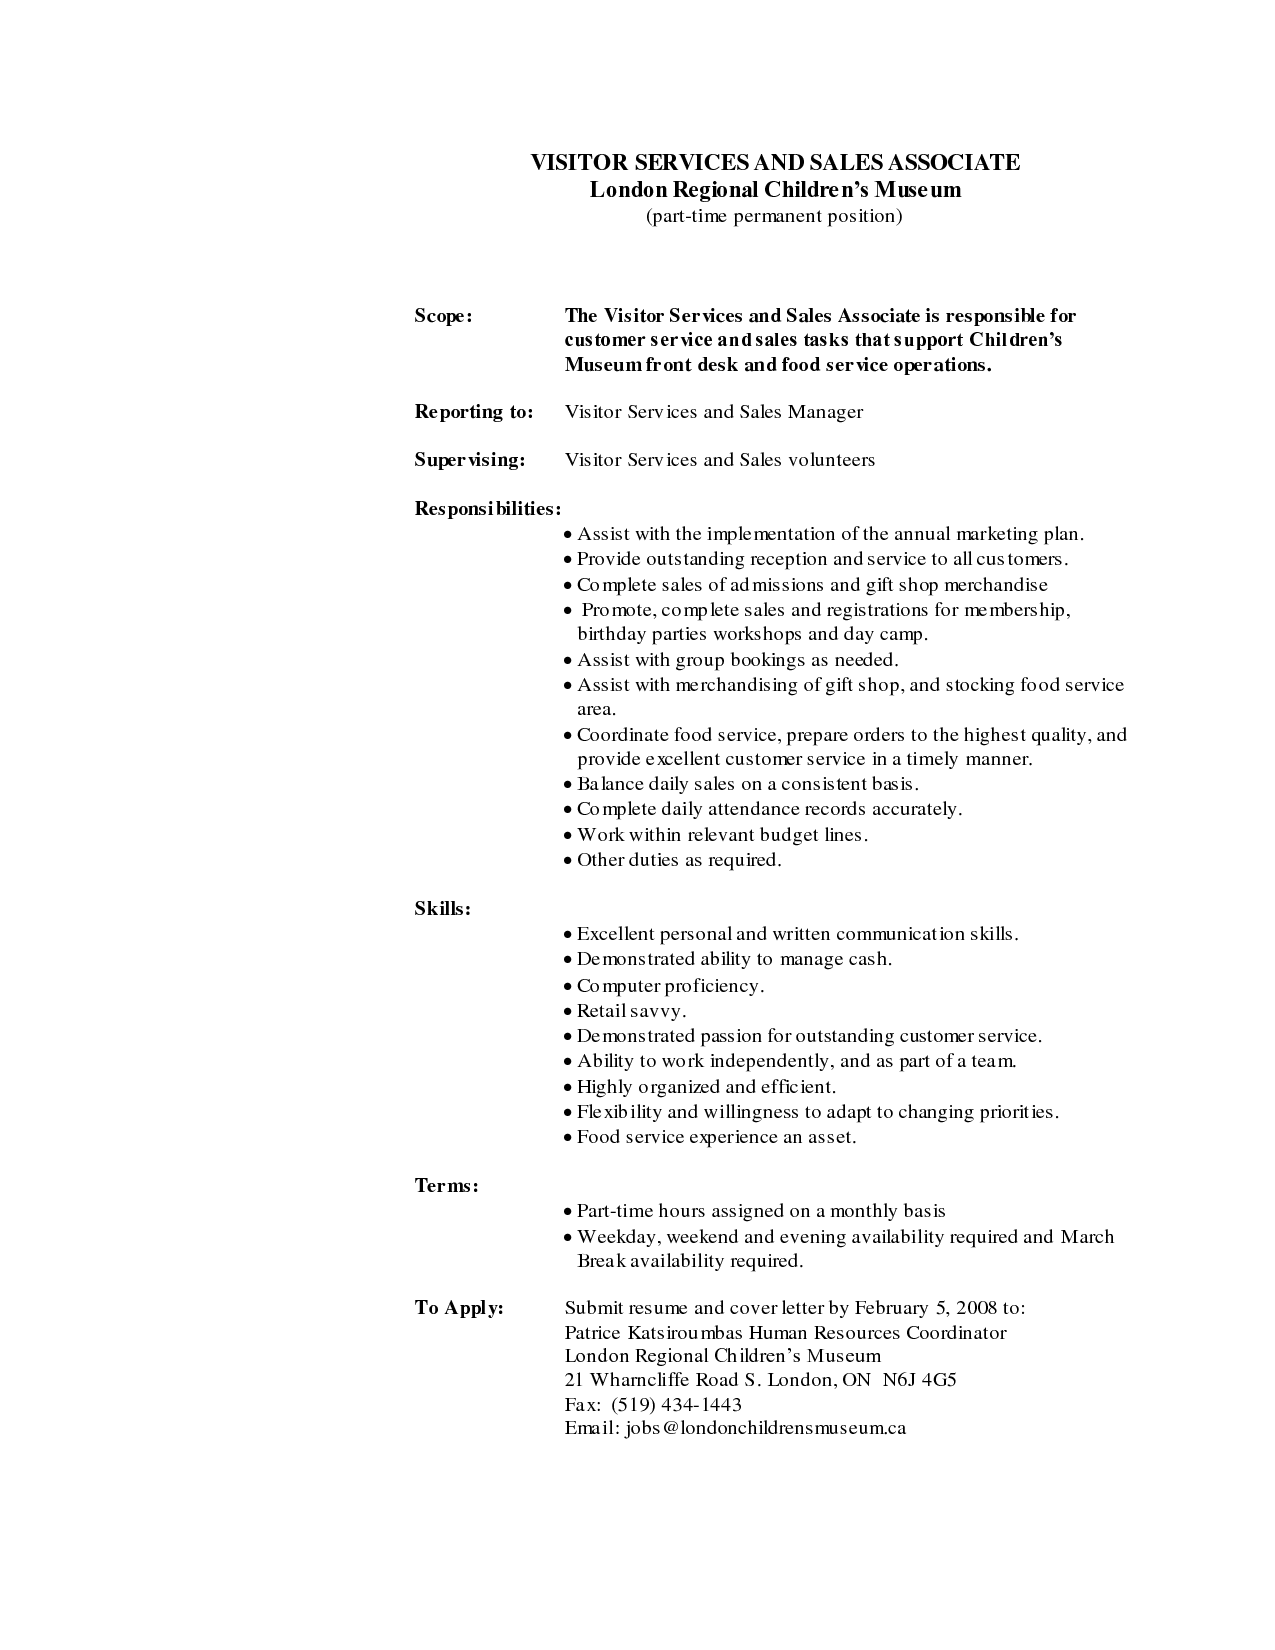 retail sales associate job description for resume sales associate job description at home depot